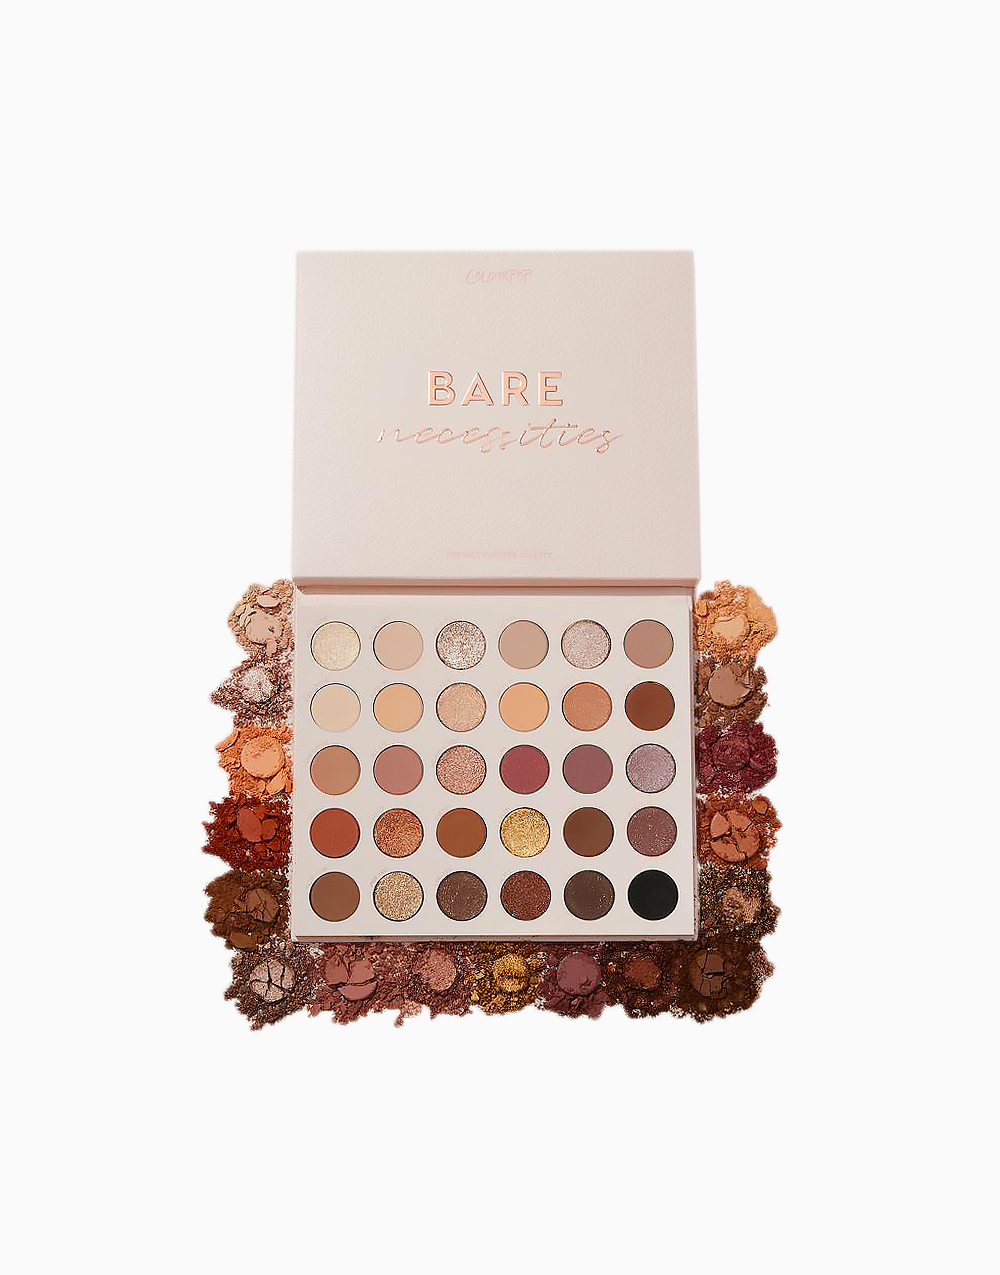 Bare Necessities Shadow Palette by ColourPop